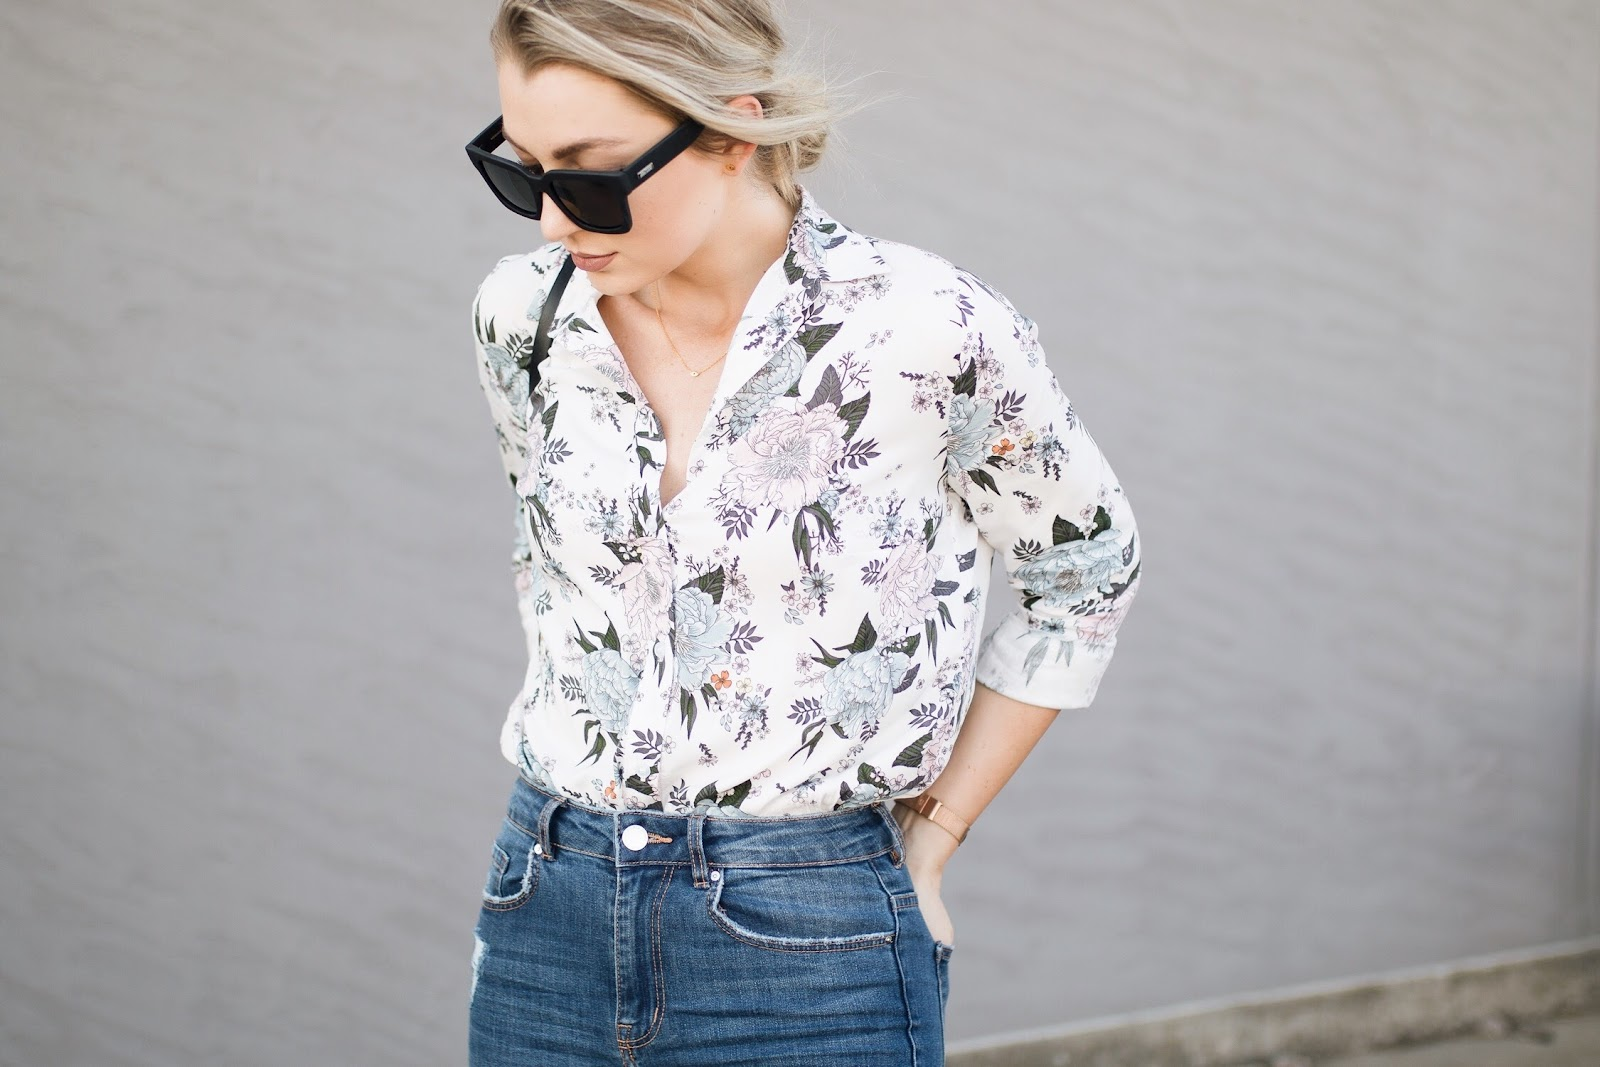 spring florals / white floral blouse under $20